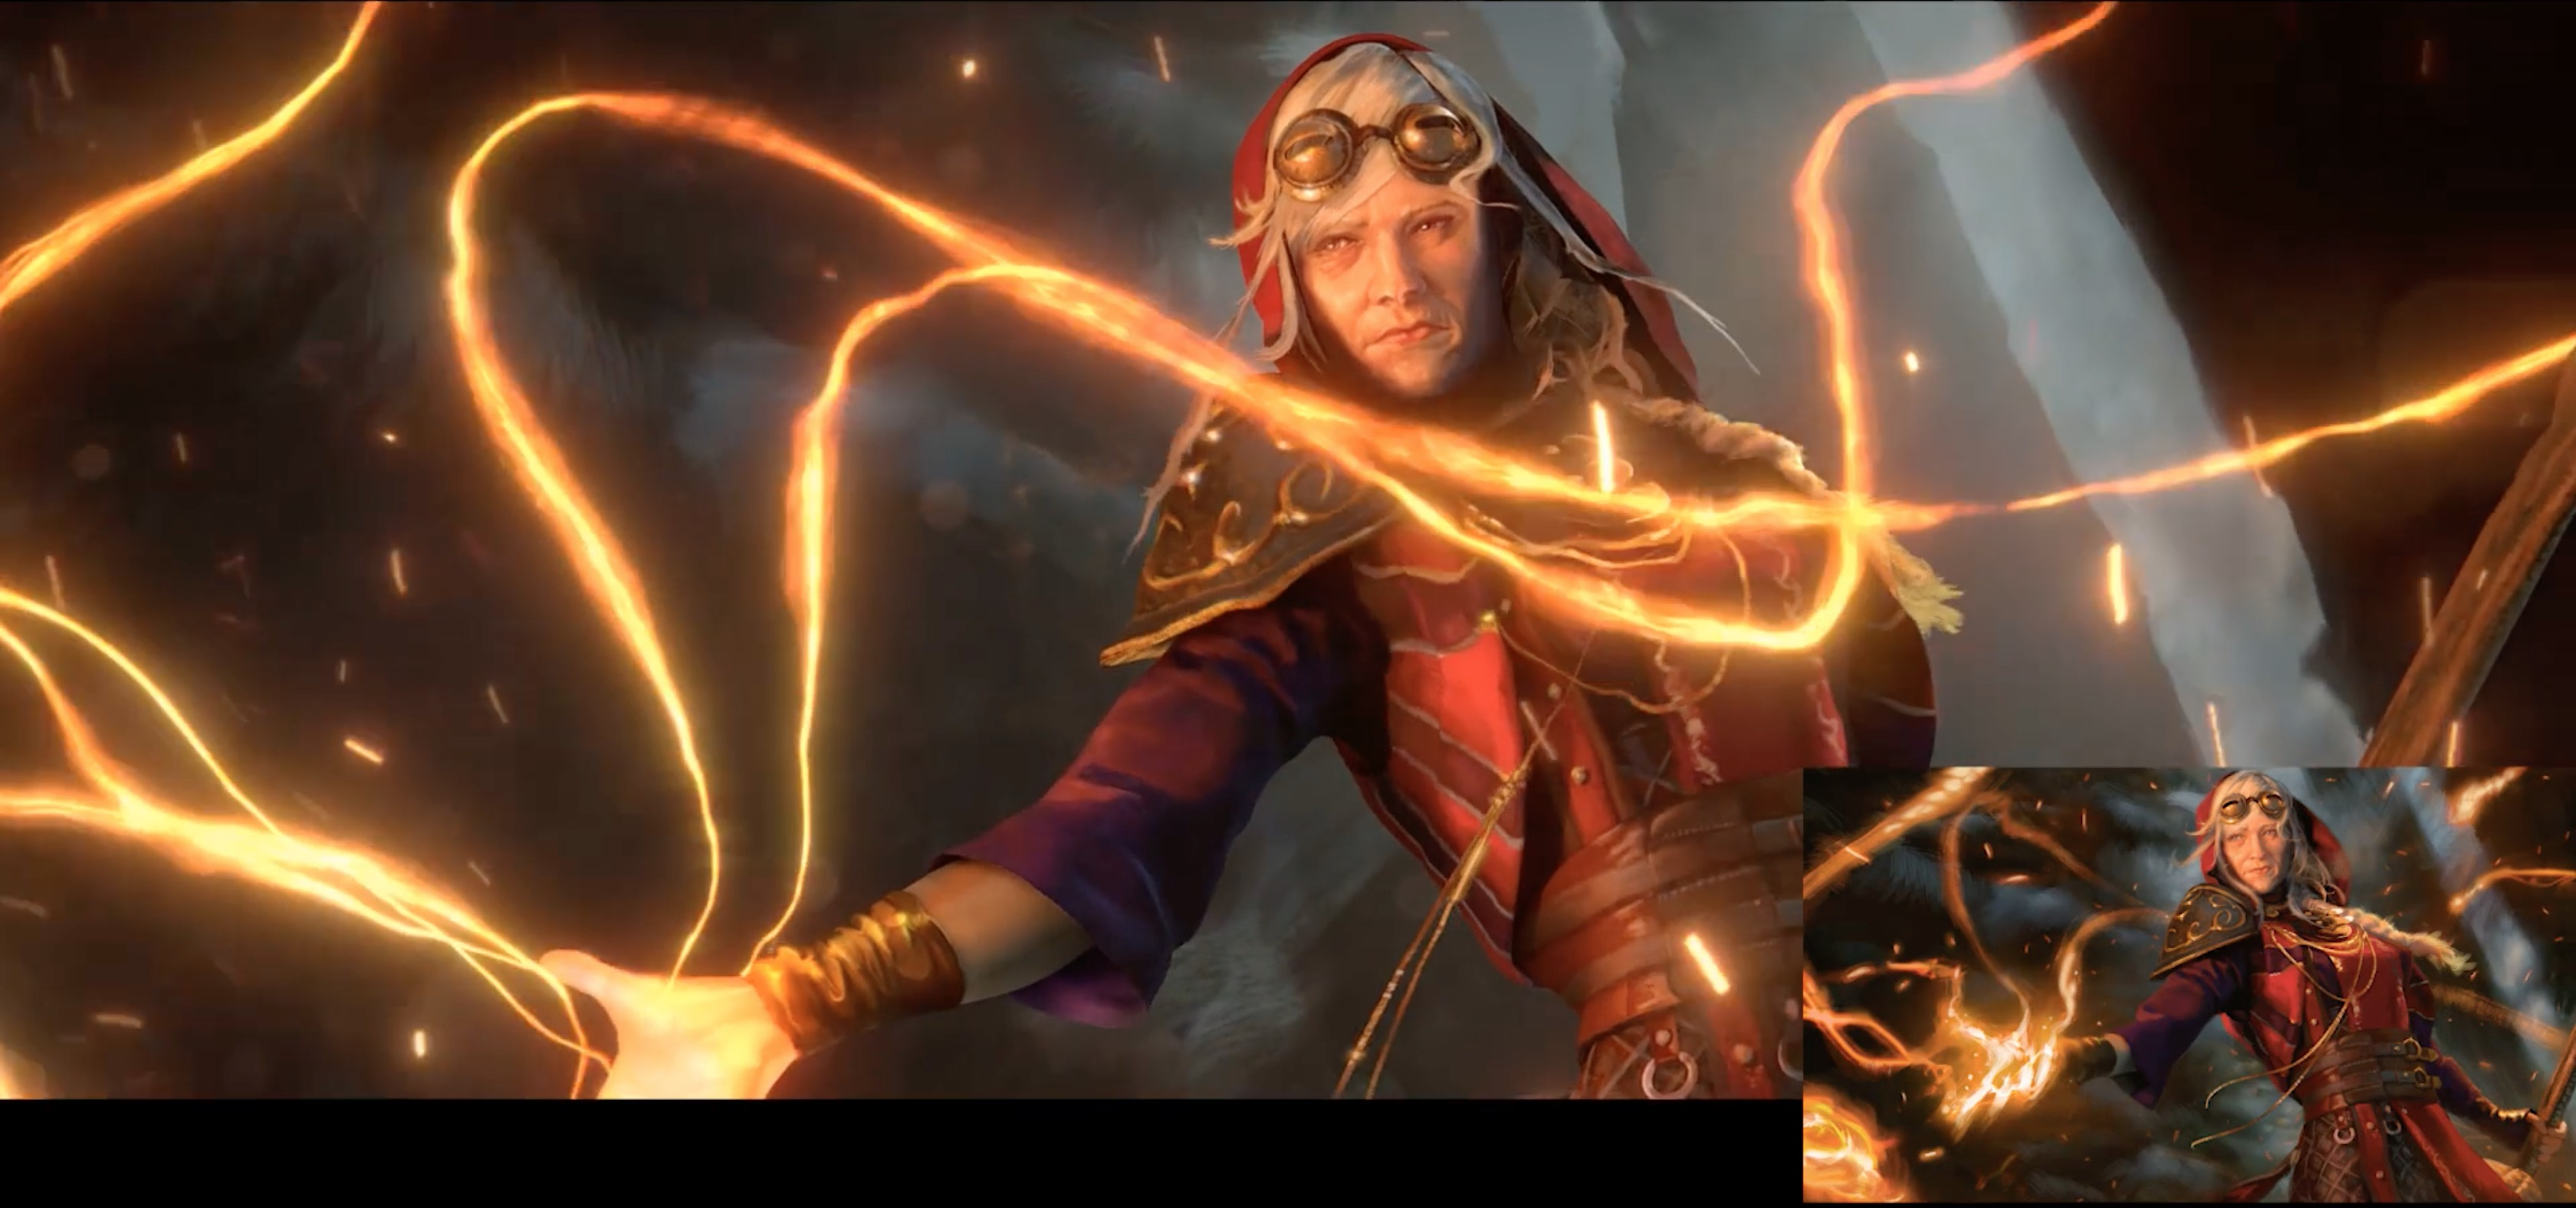 Making of Magic: the Gathering Cinematic